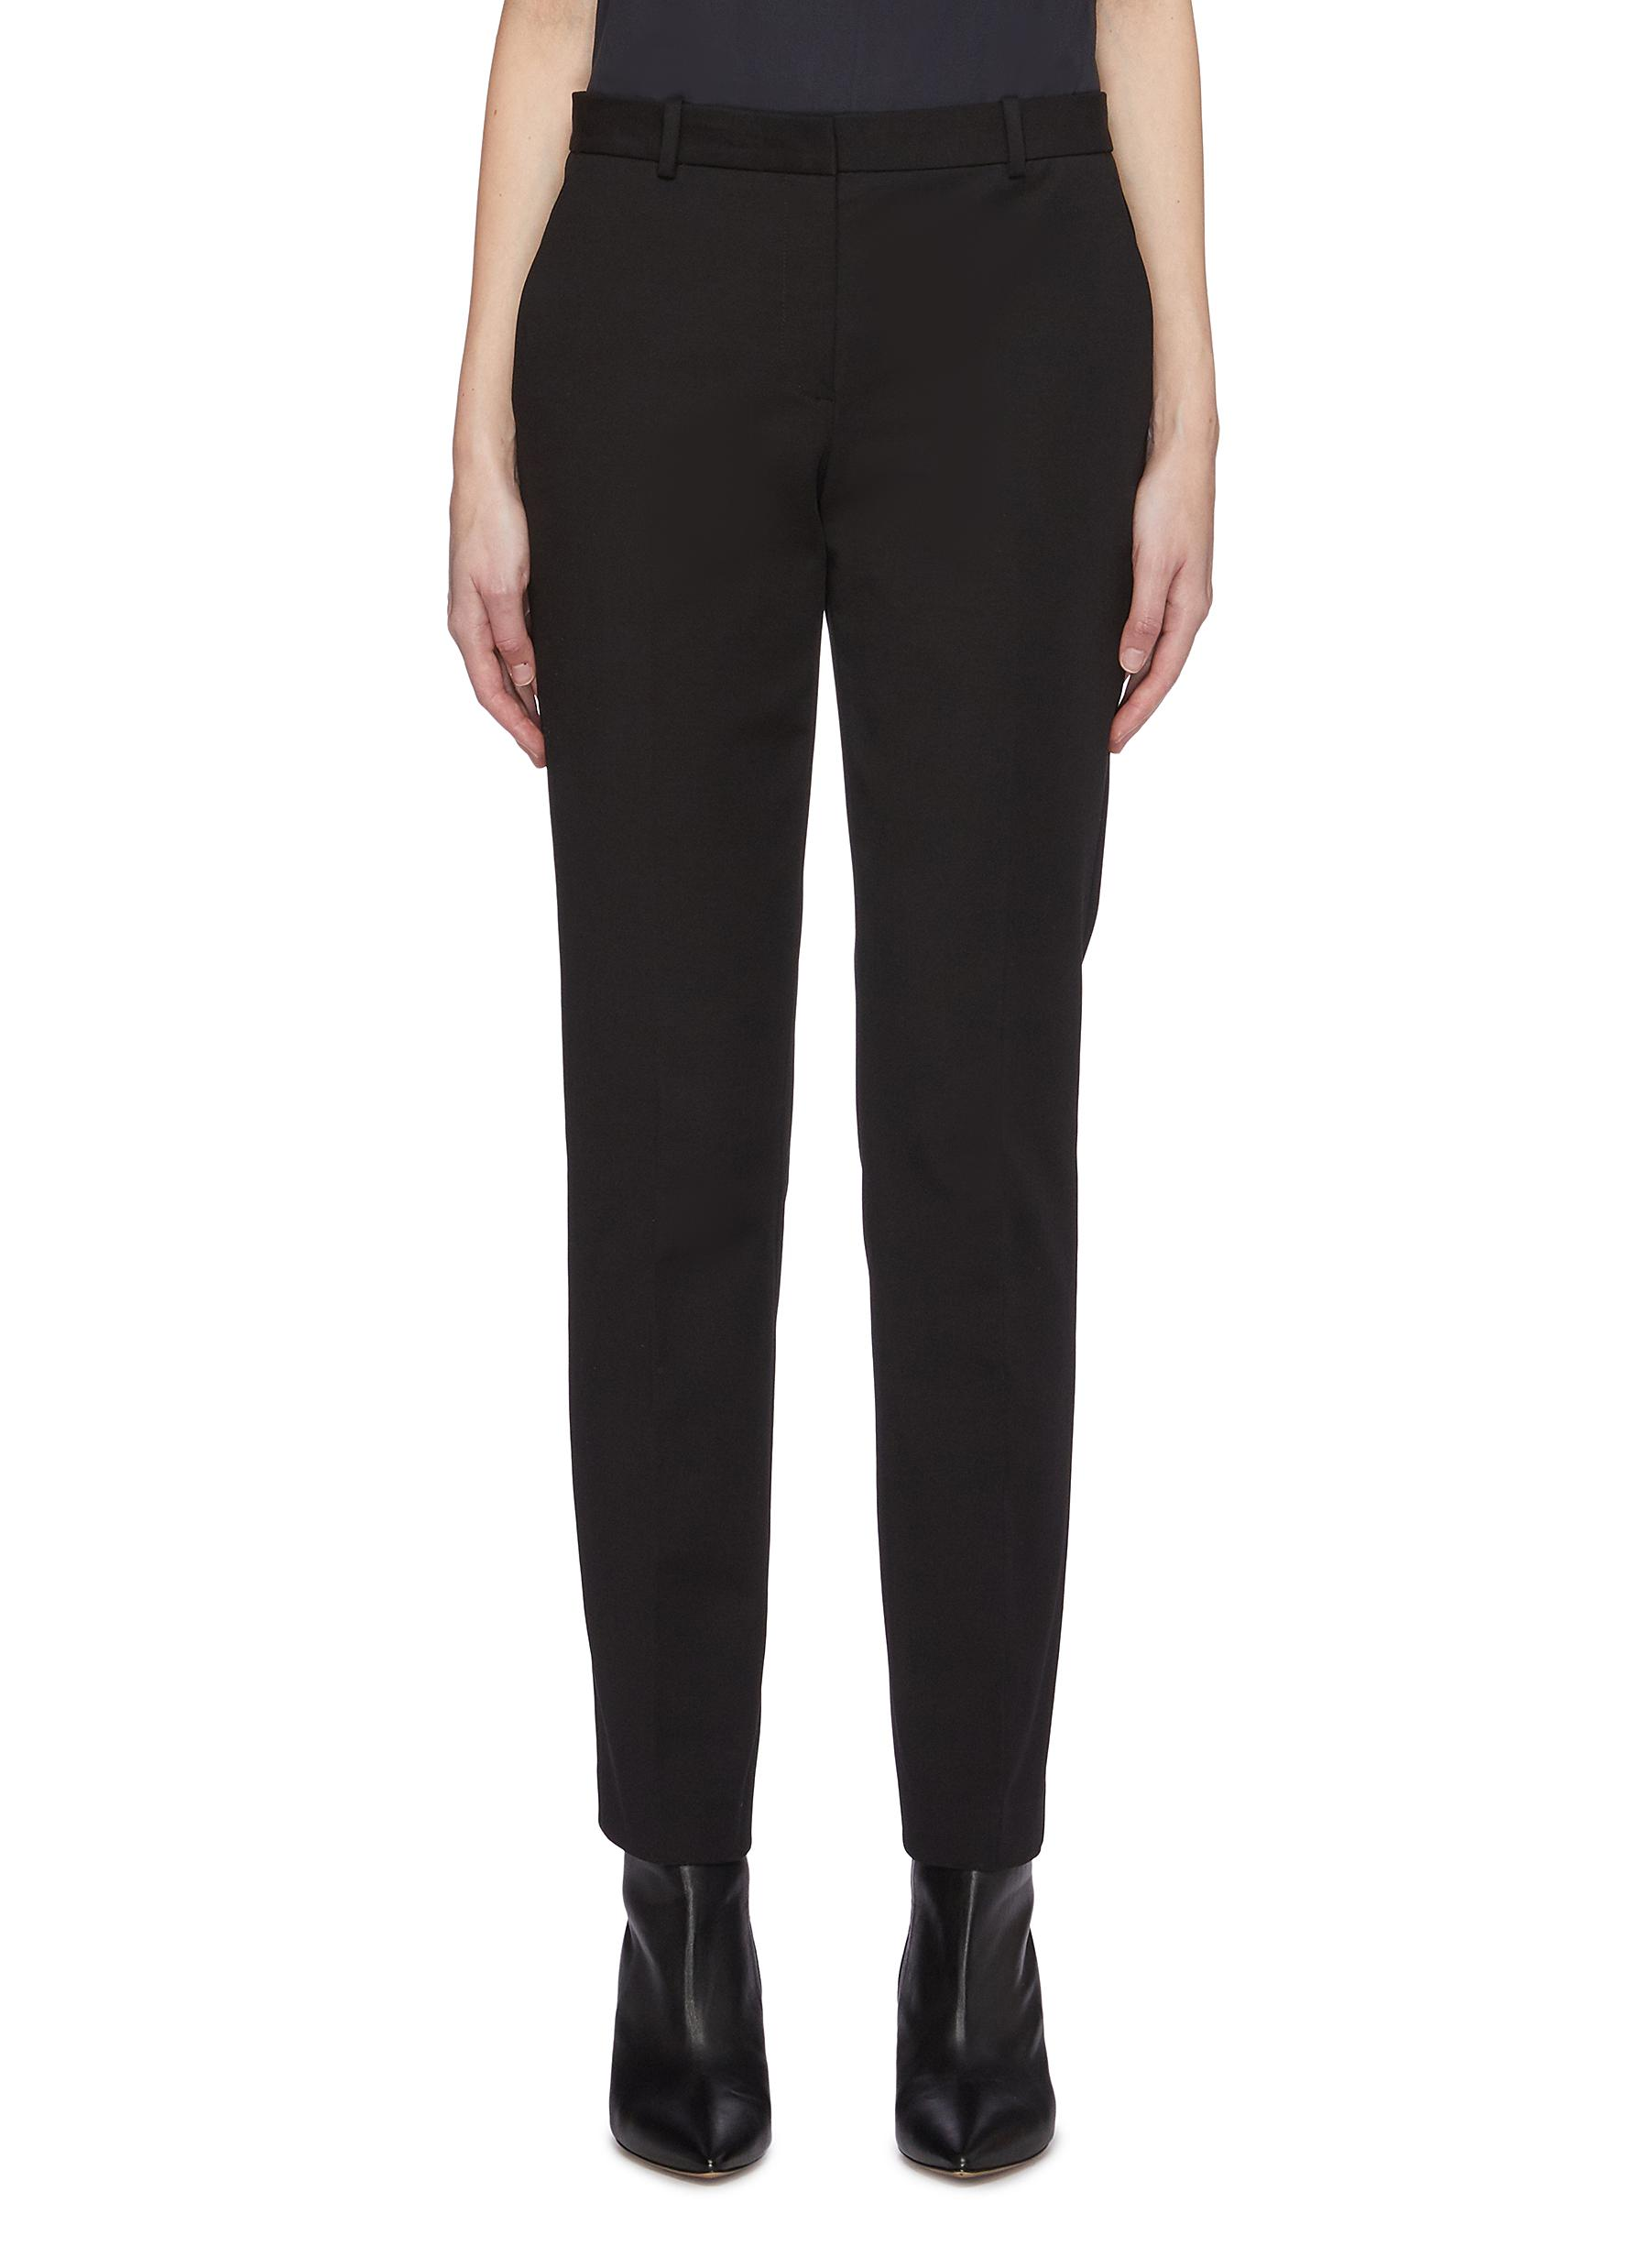 Tailored pants by Theory